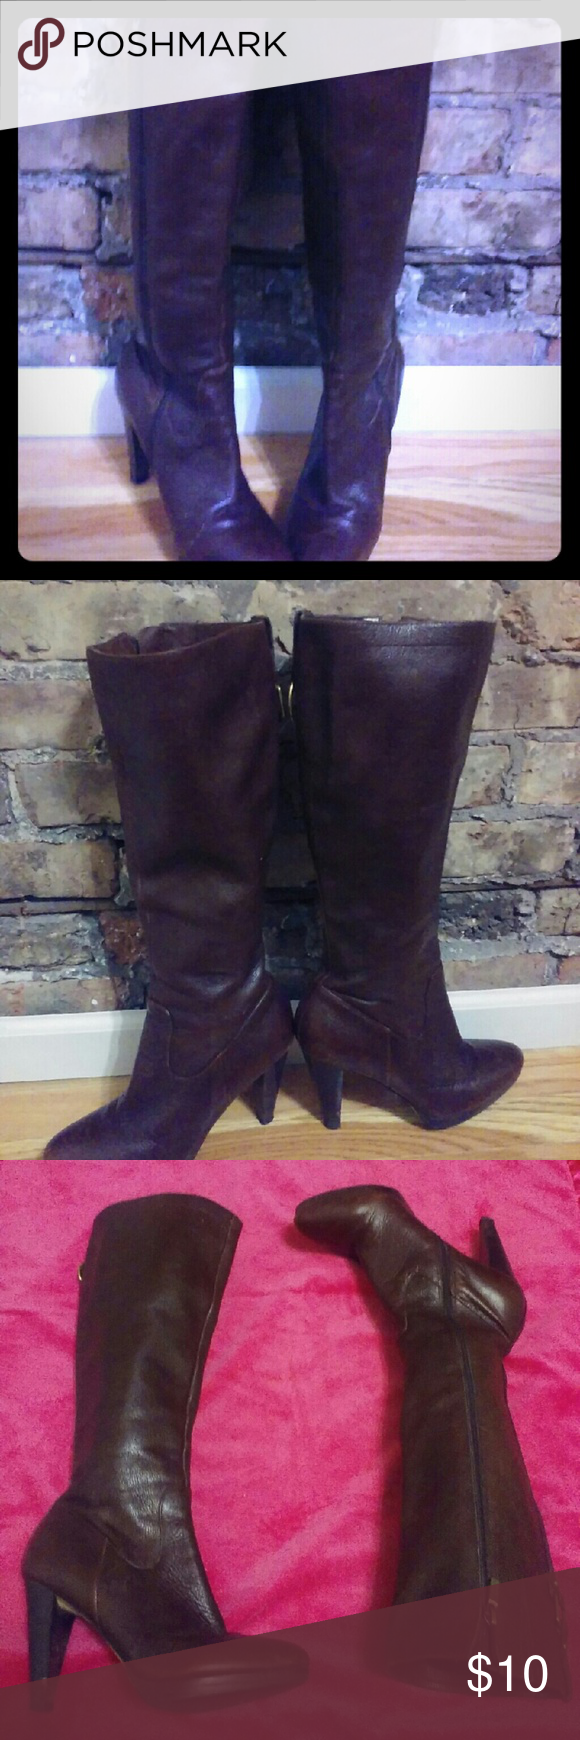 Banana Republic Boots Brown leather heeled boots they do have some scratches and scuffs but definitely still have some life to them. Sold as is. True to size. Banana Republic Shoes Heeled Boots